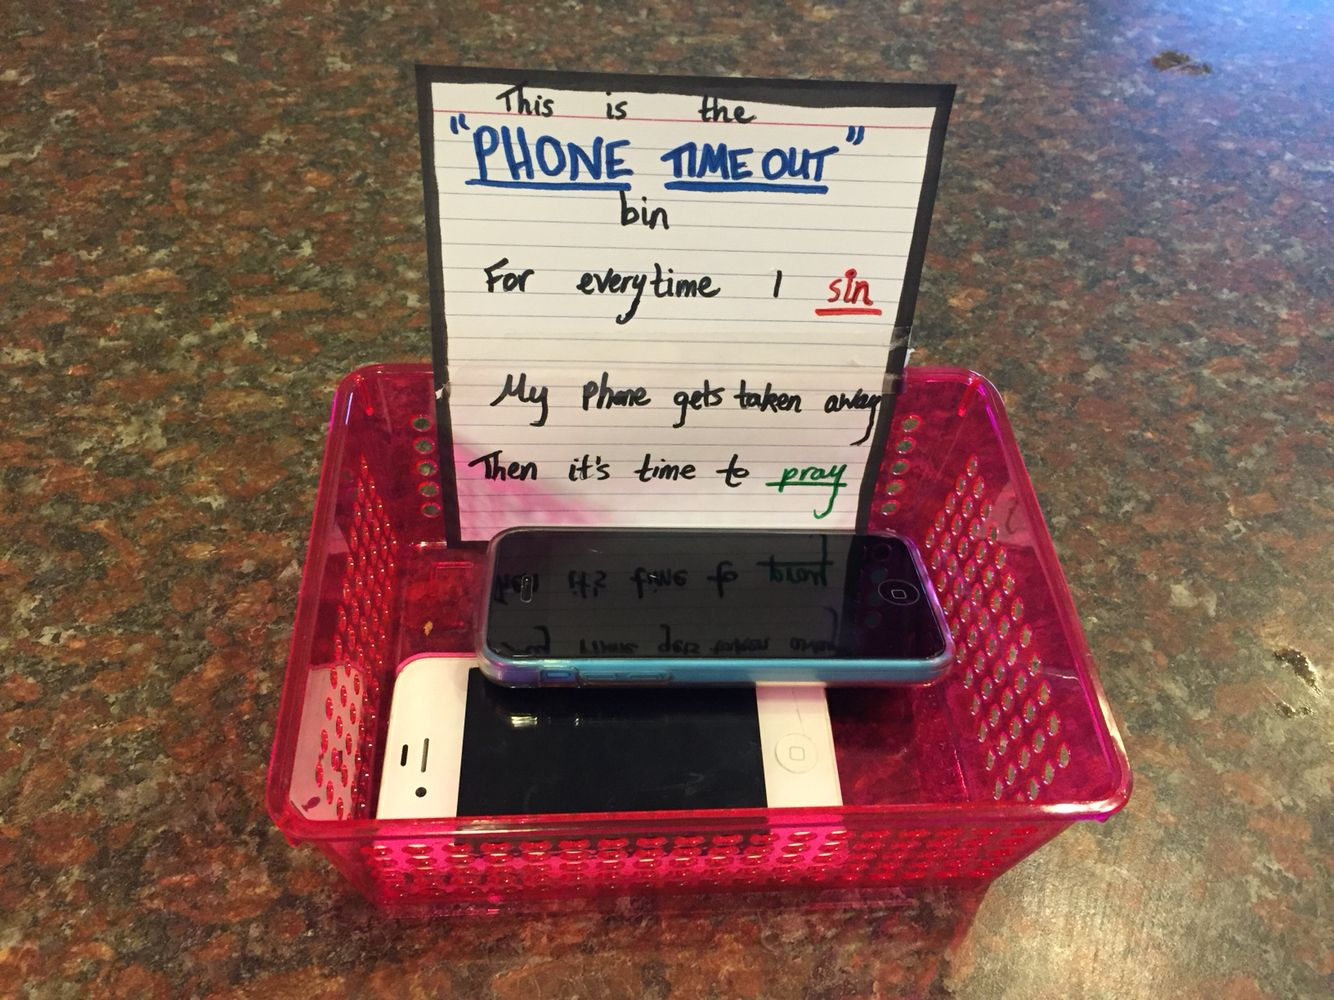 Cell phone time out bin for the boys...heehee